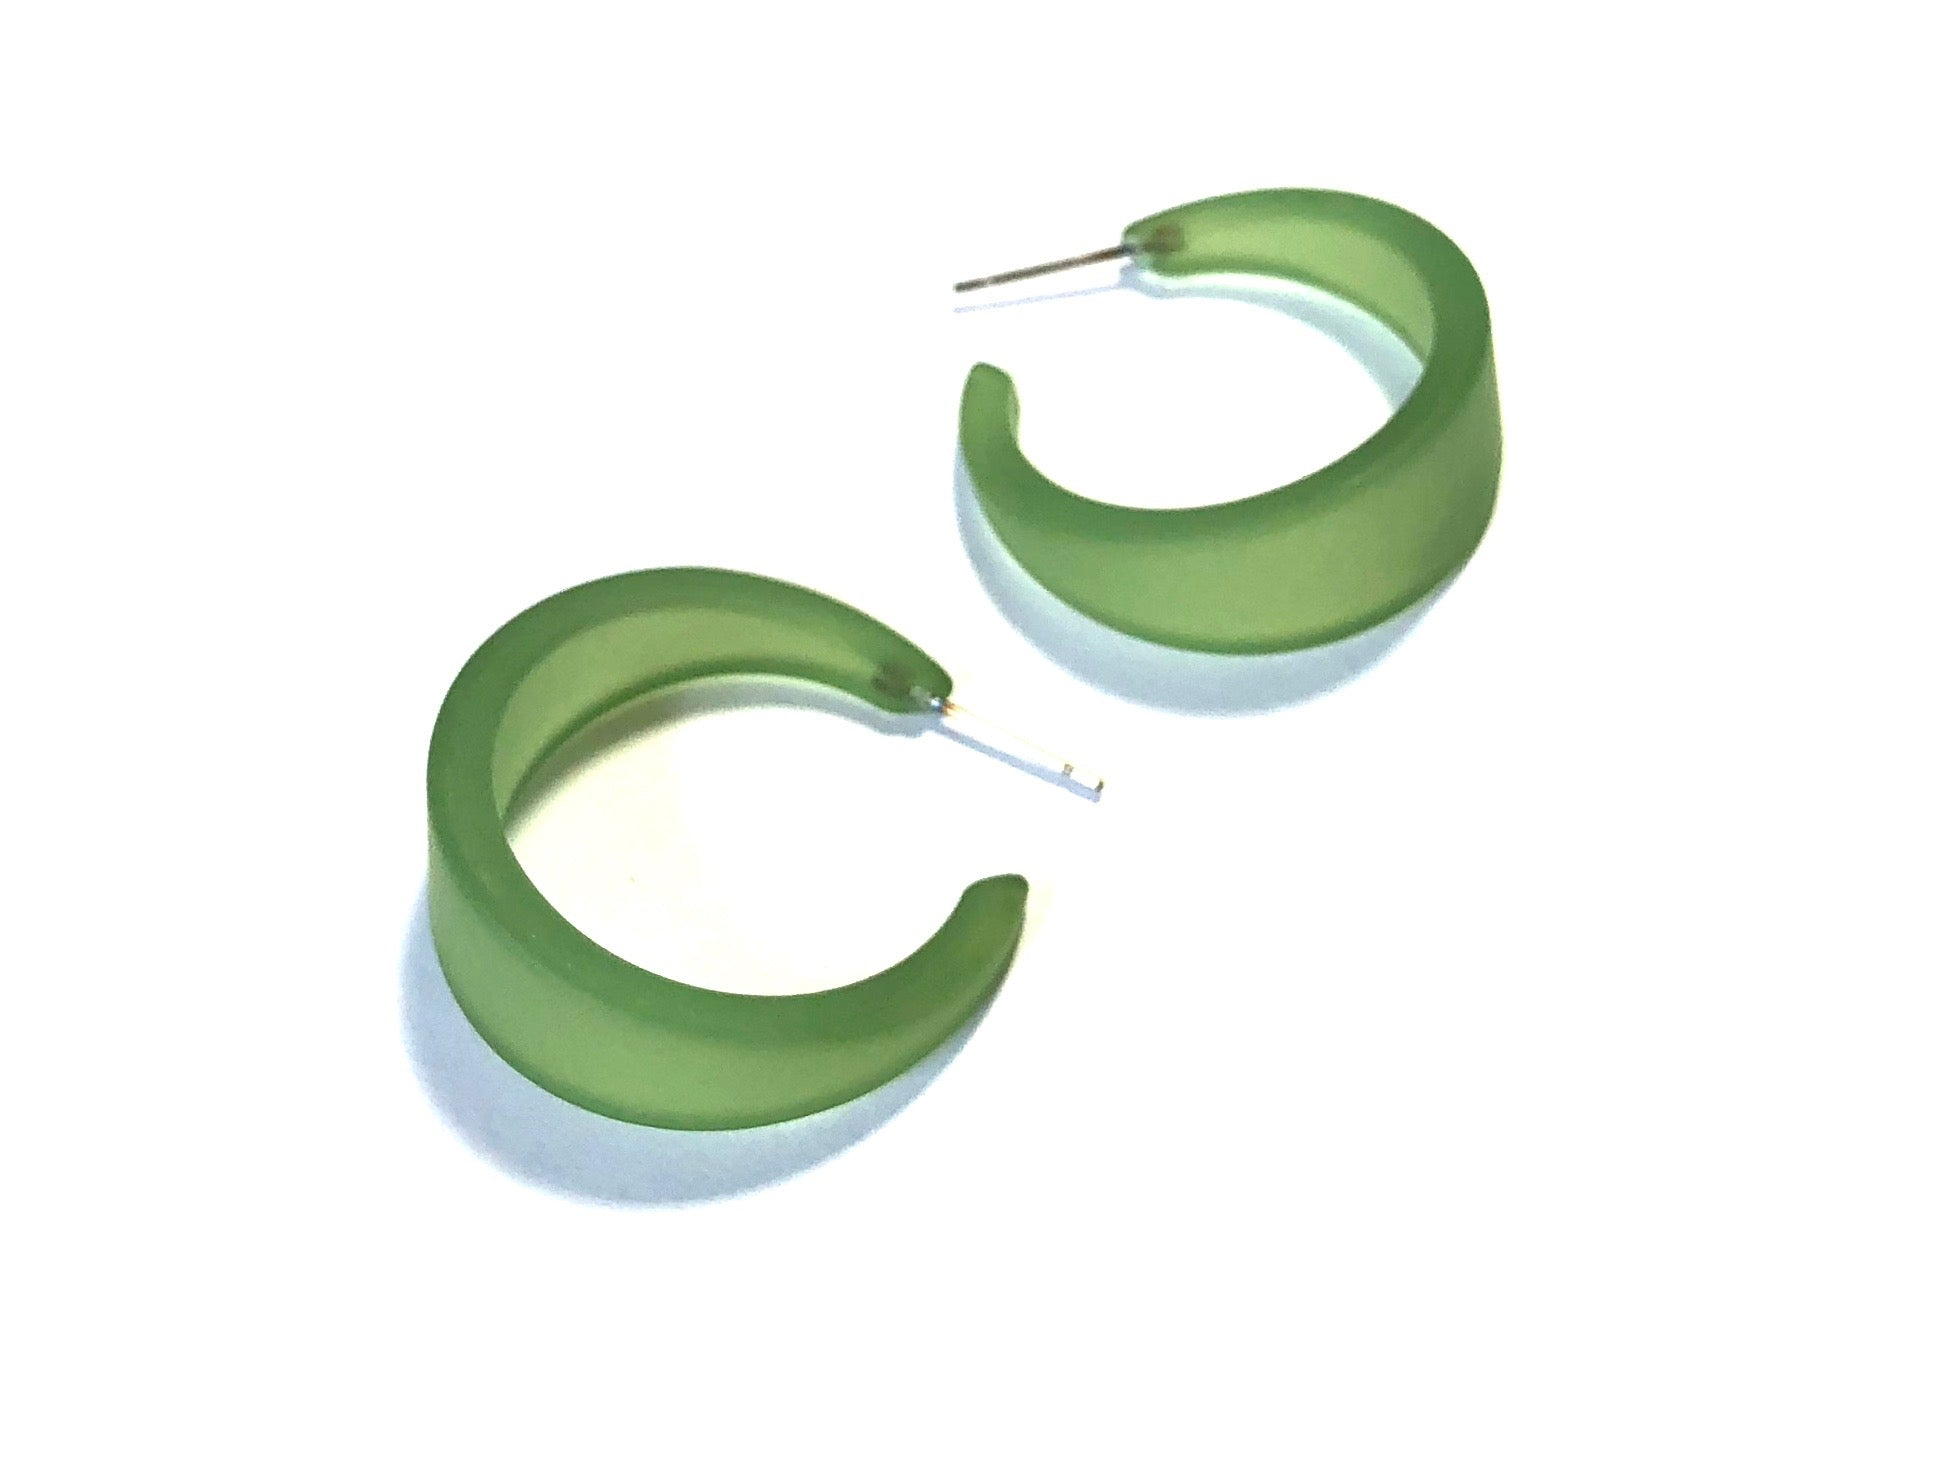 sea glass green earrings